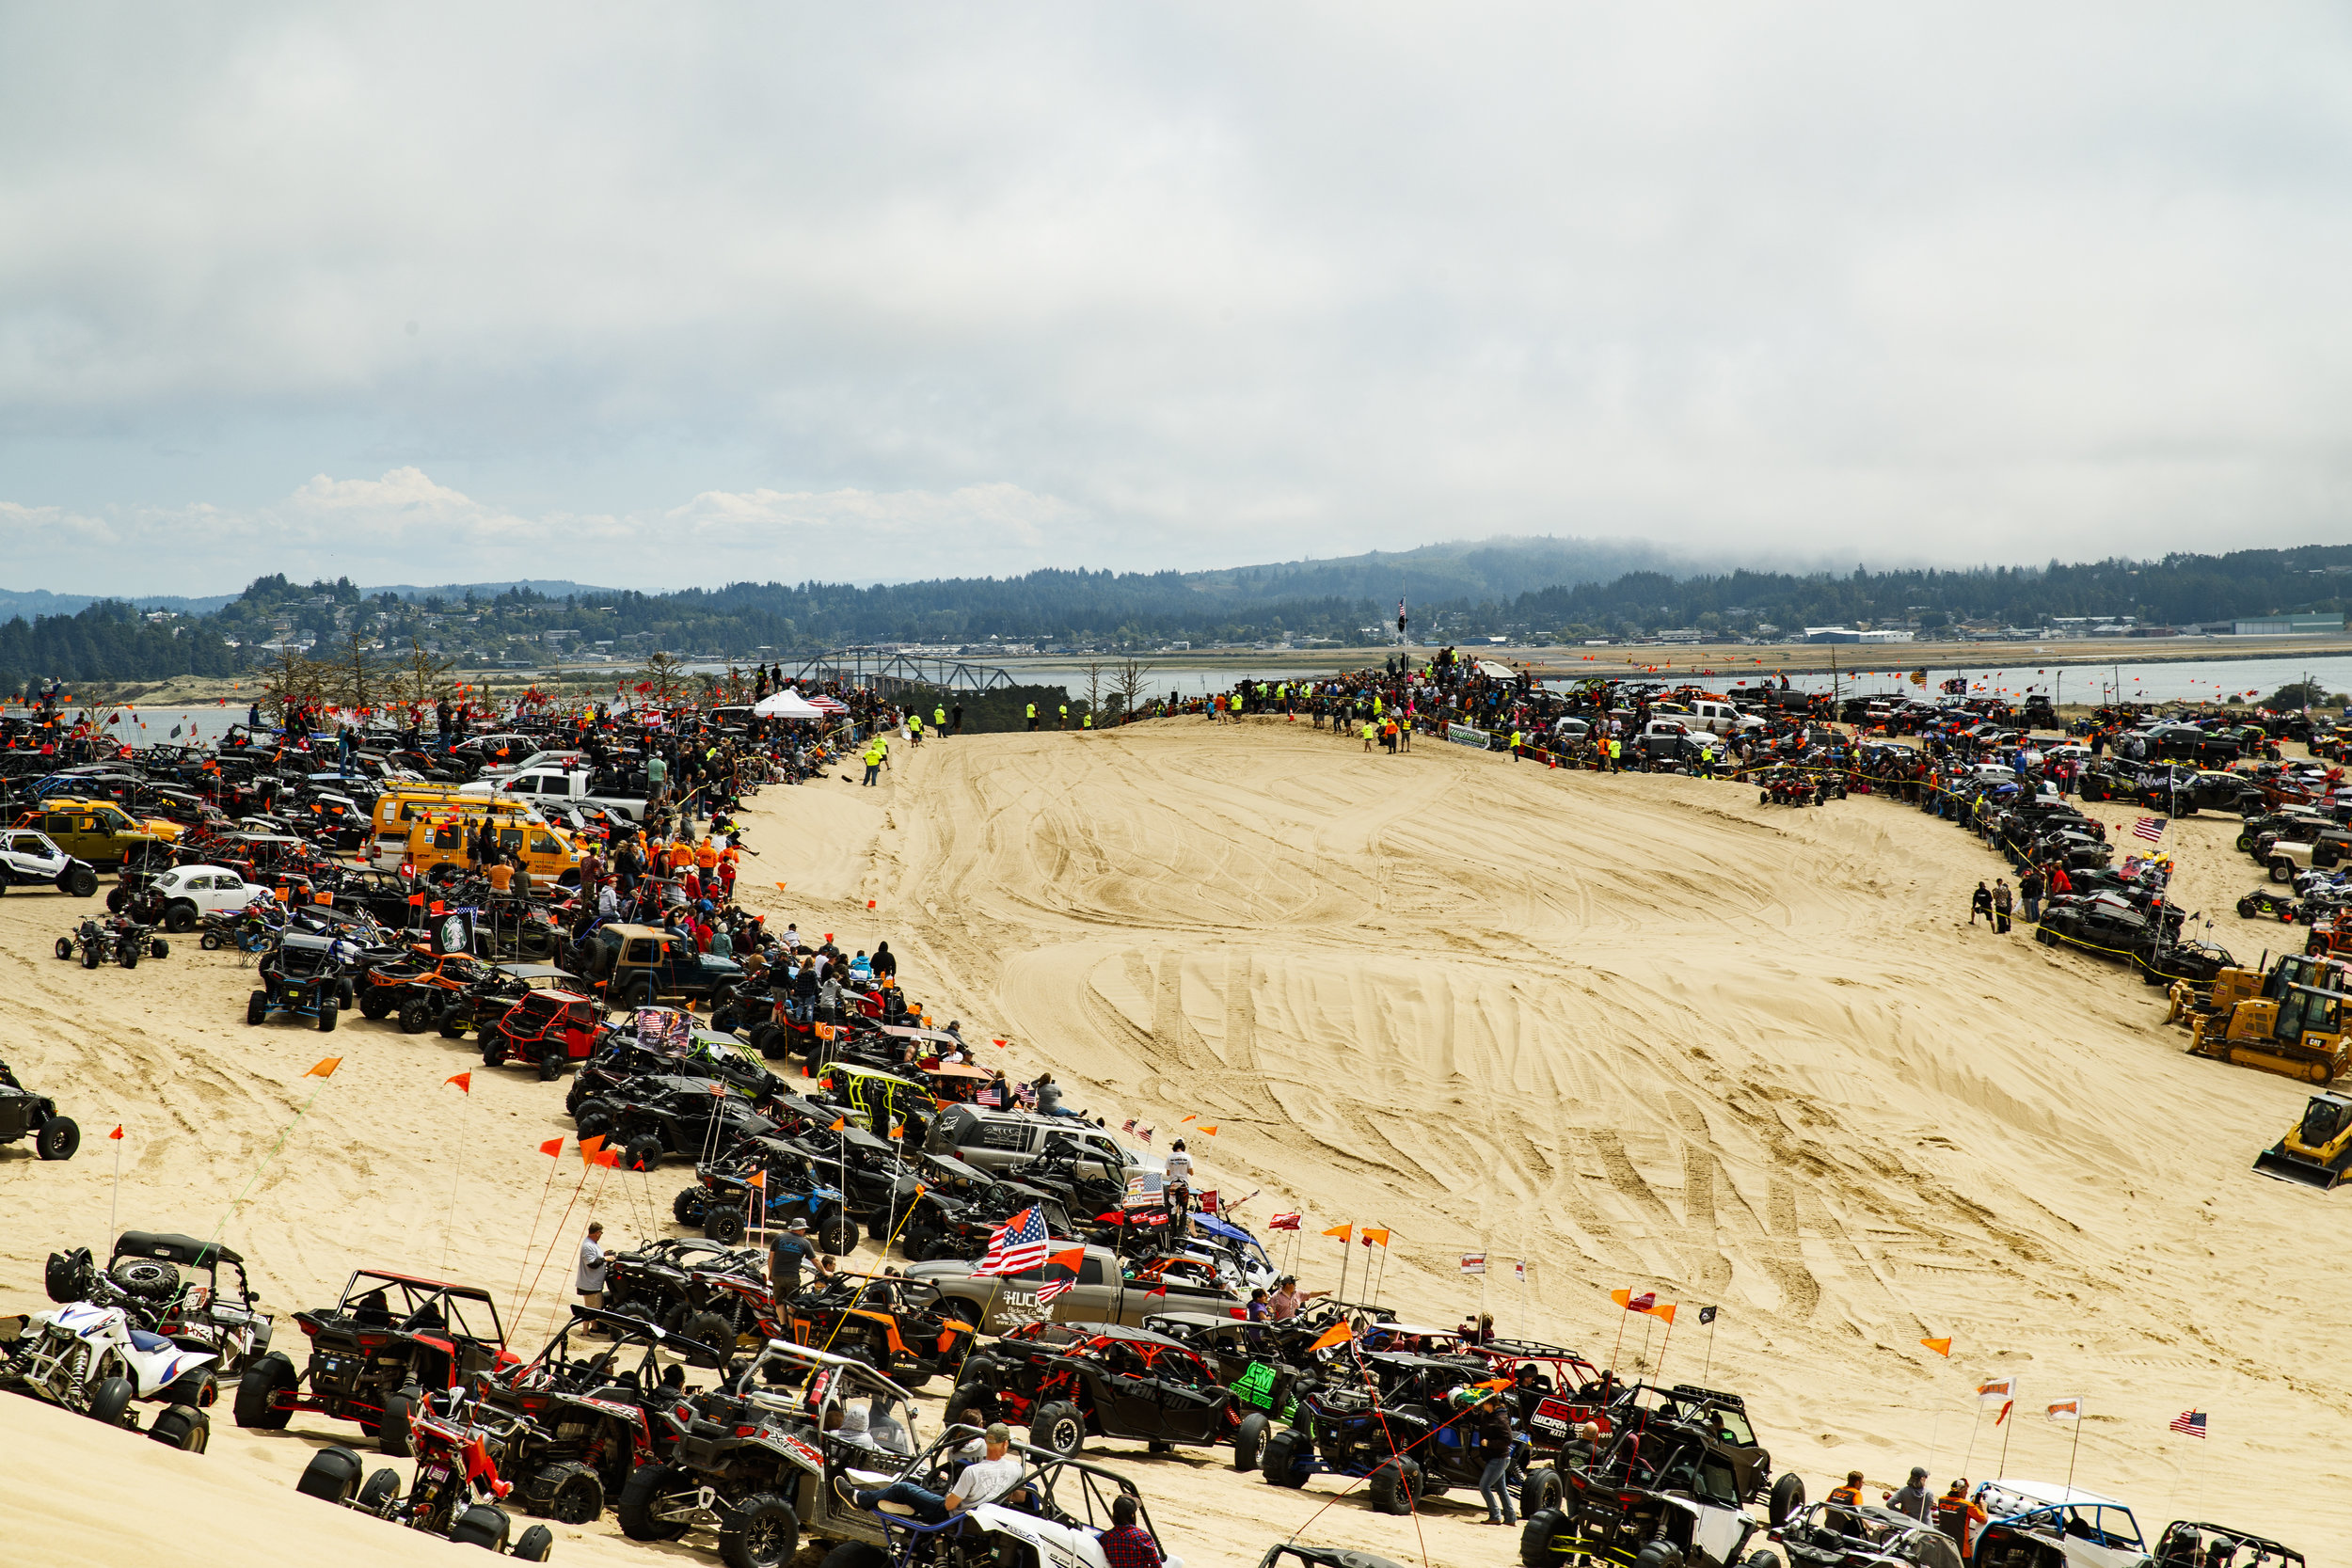 6_29_CaseyCurrie_UTVTakeover_CoosBay_Oregon_Can-Am_014.jpg